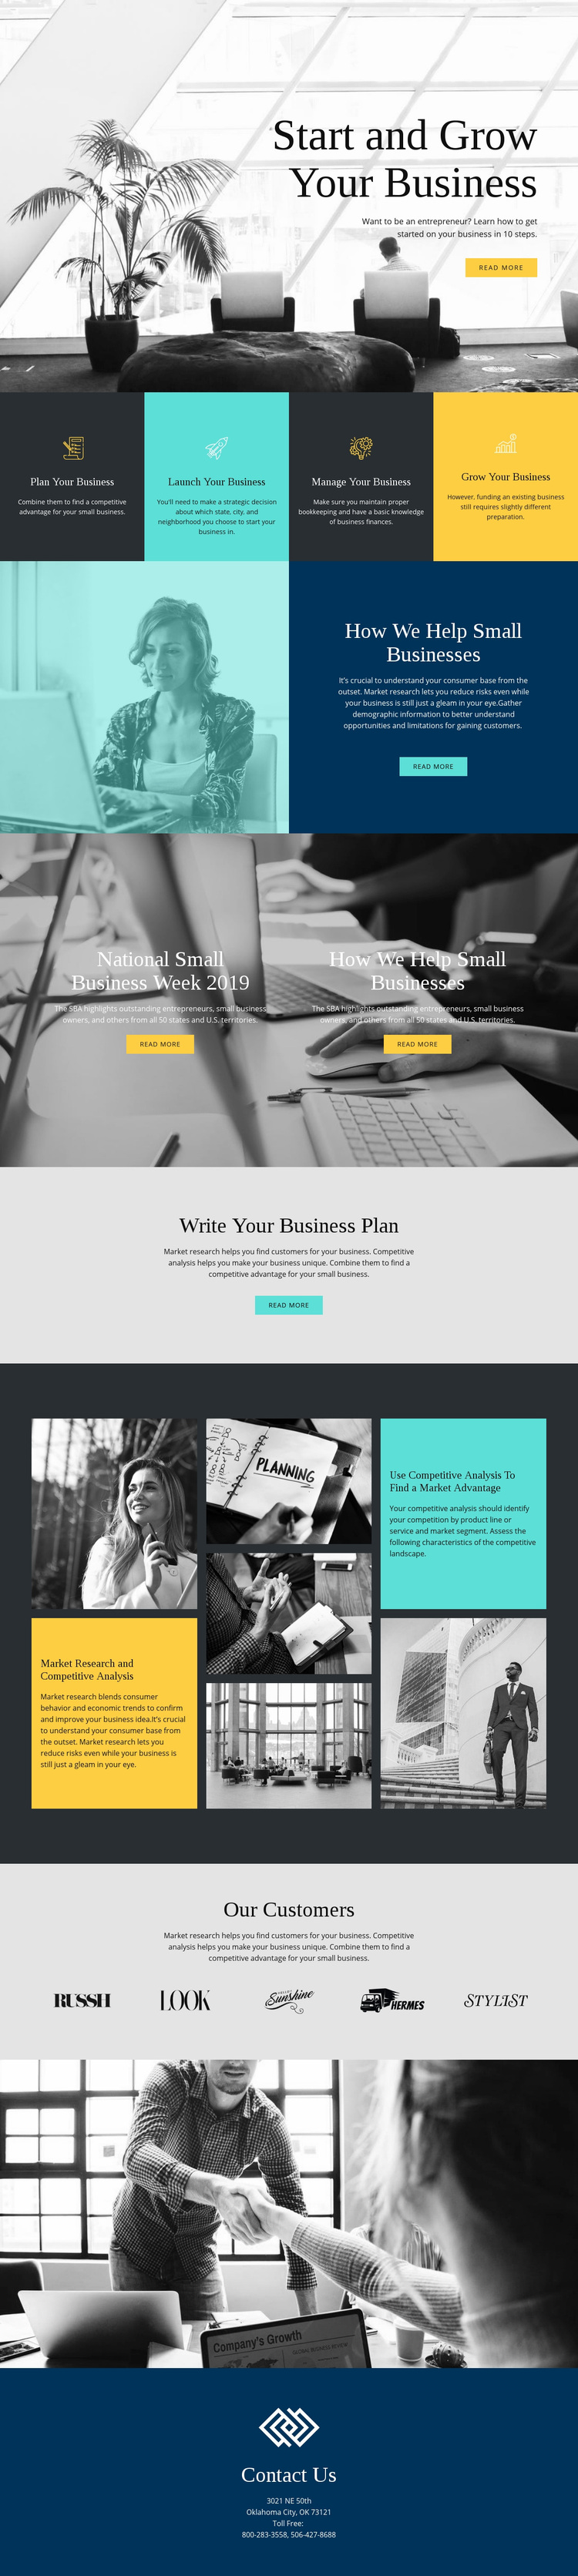 Start and grow your business Web Page Designer